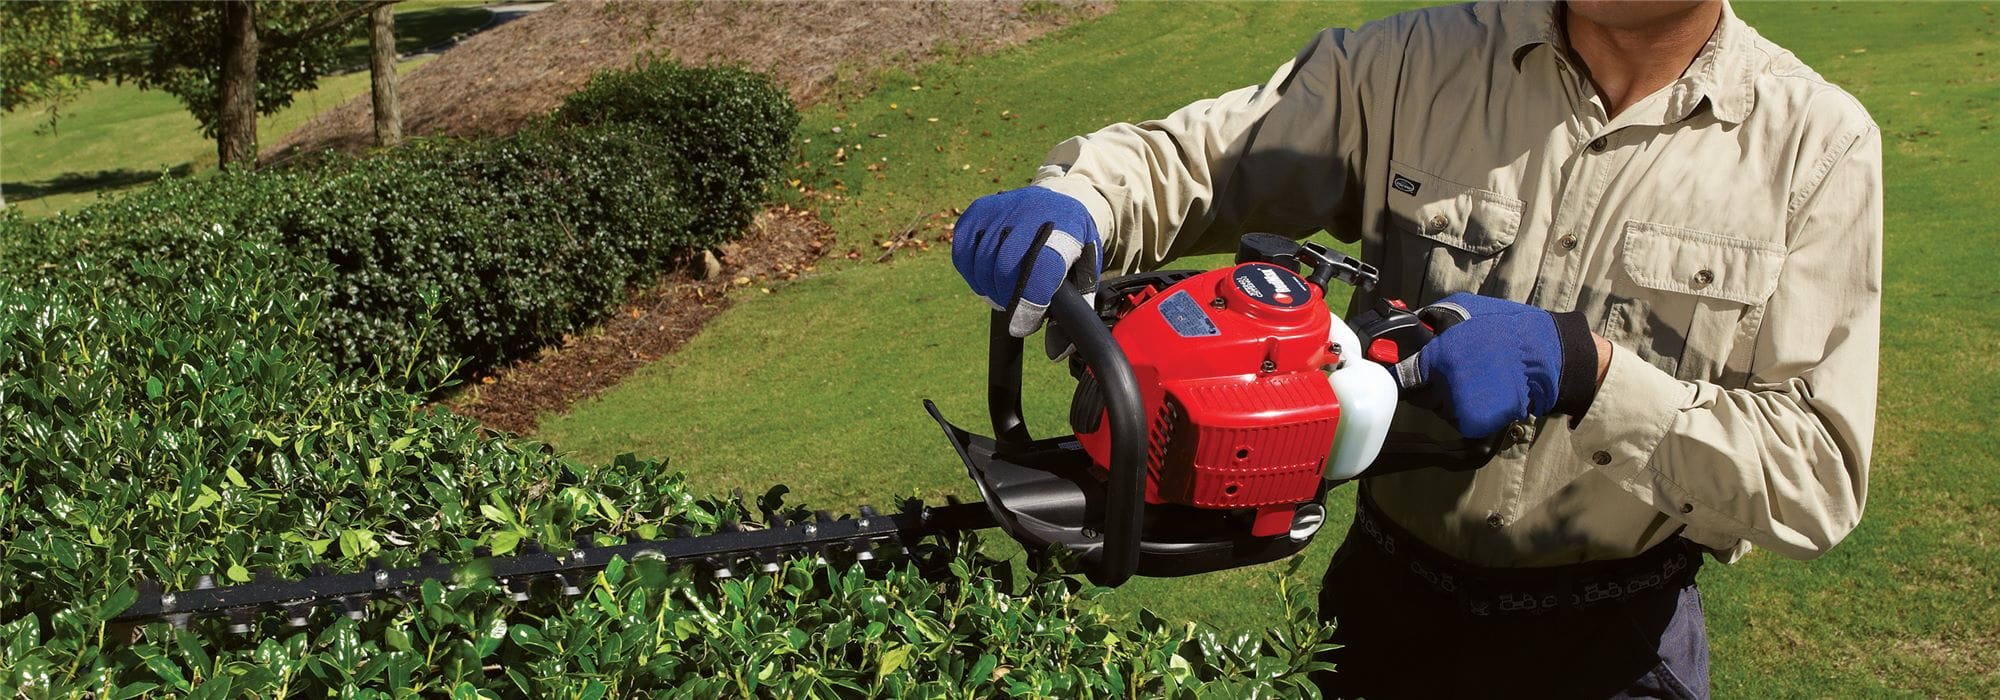 Hedge Trimmers Amp Hedge Cutters